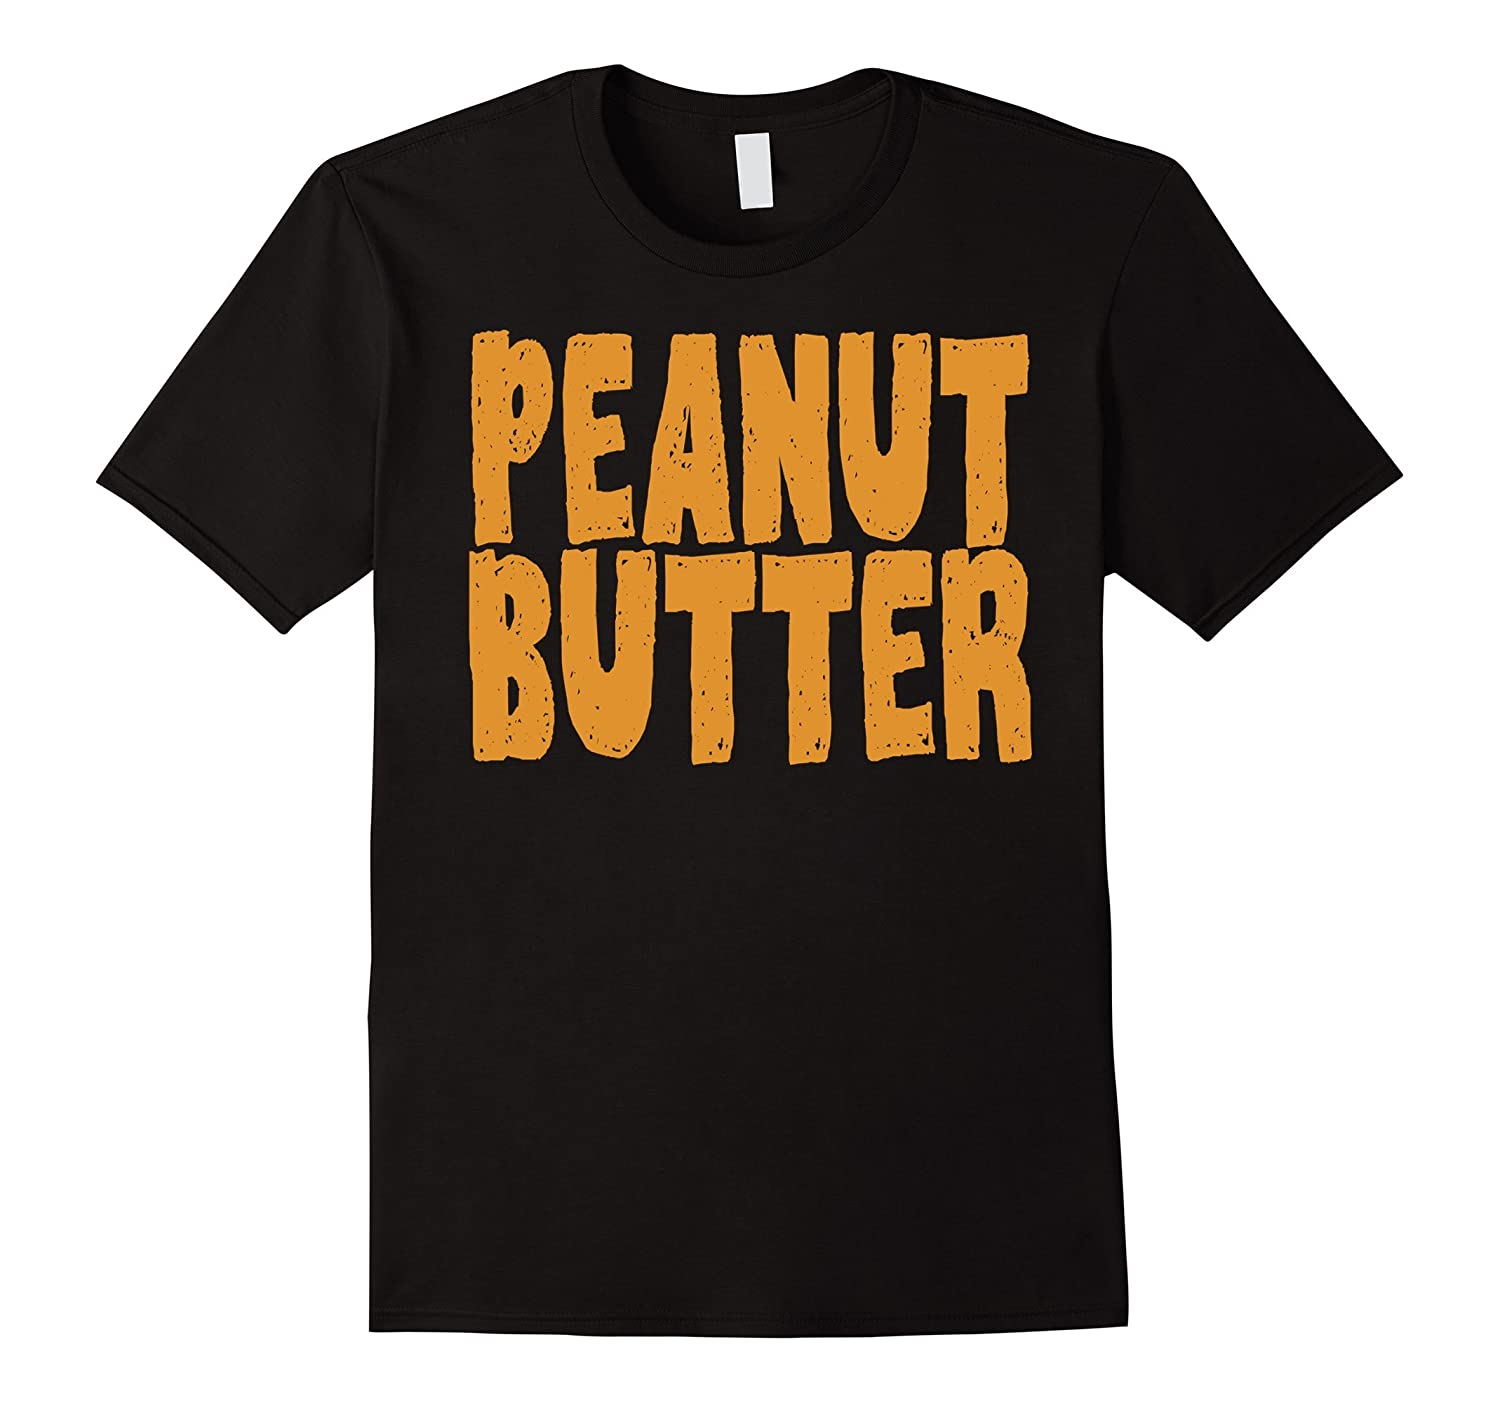 Peanut Butter T-Shirt Jelly Couples Friends Halloween Shirt-FL